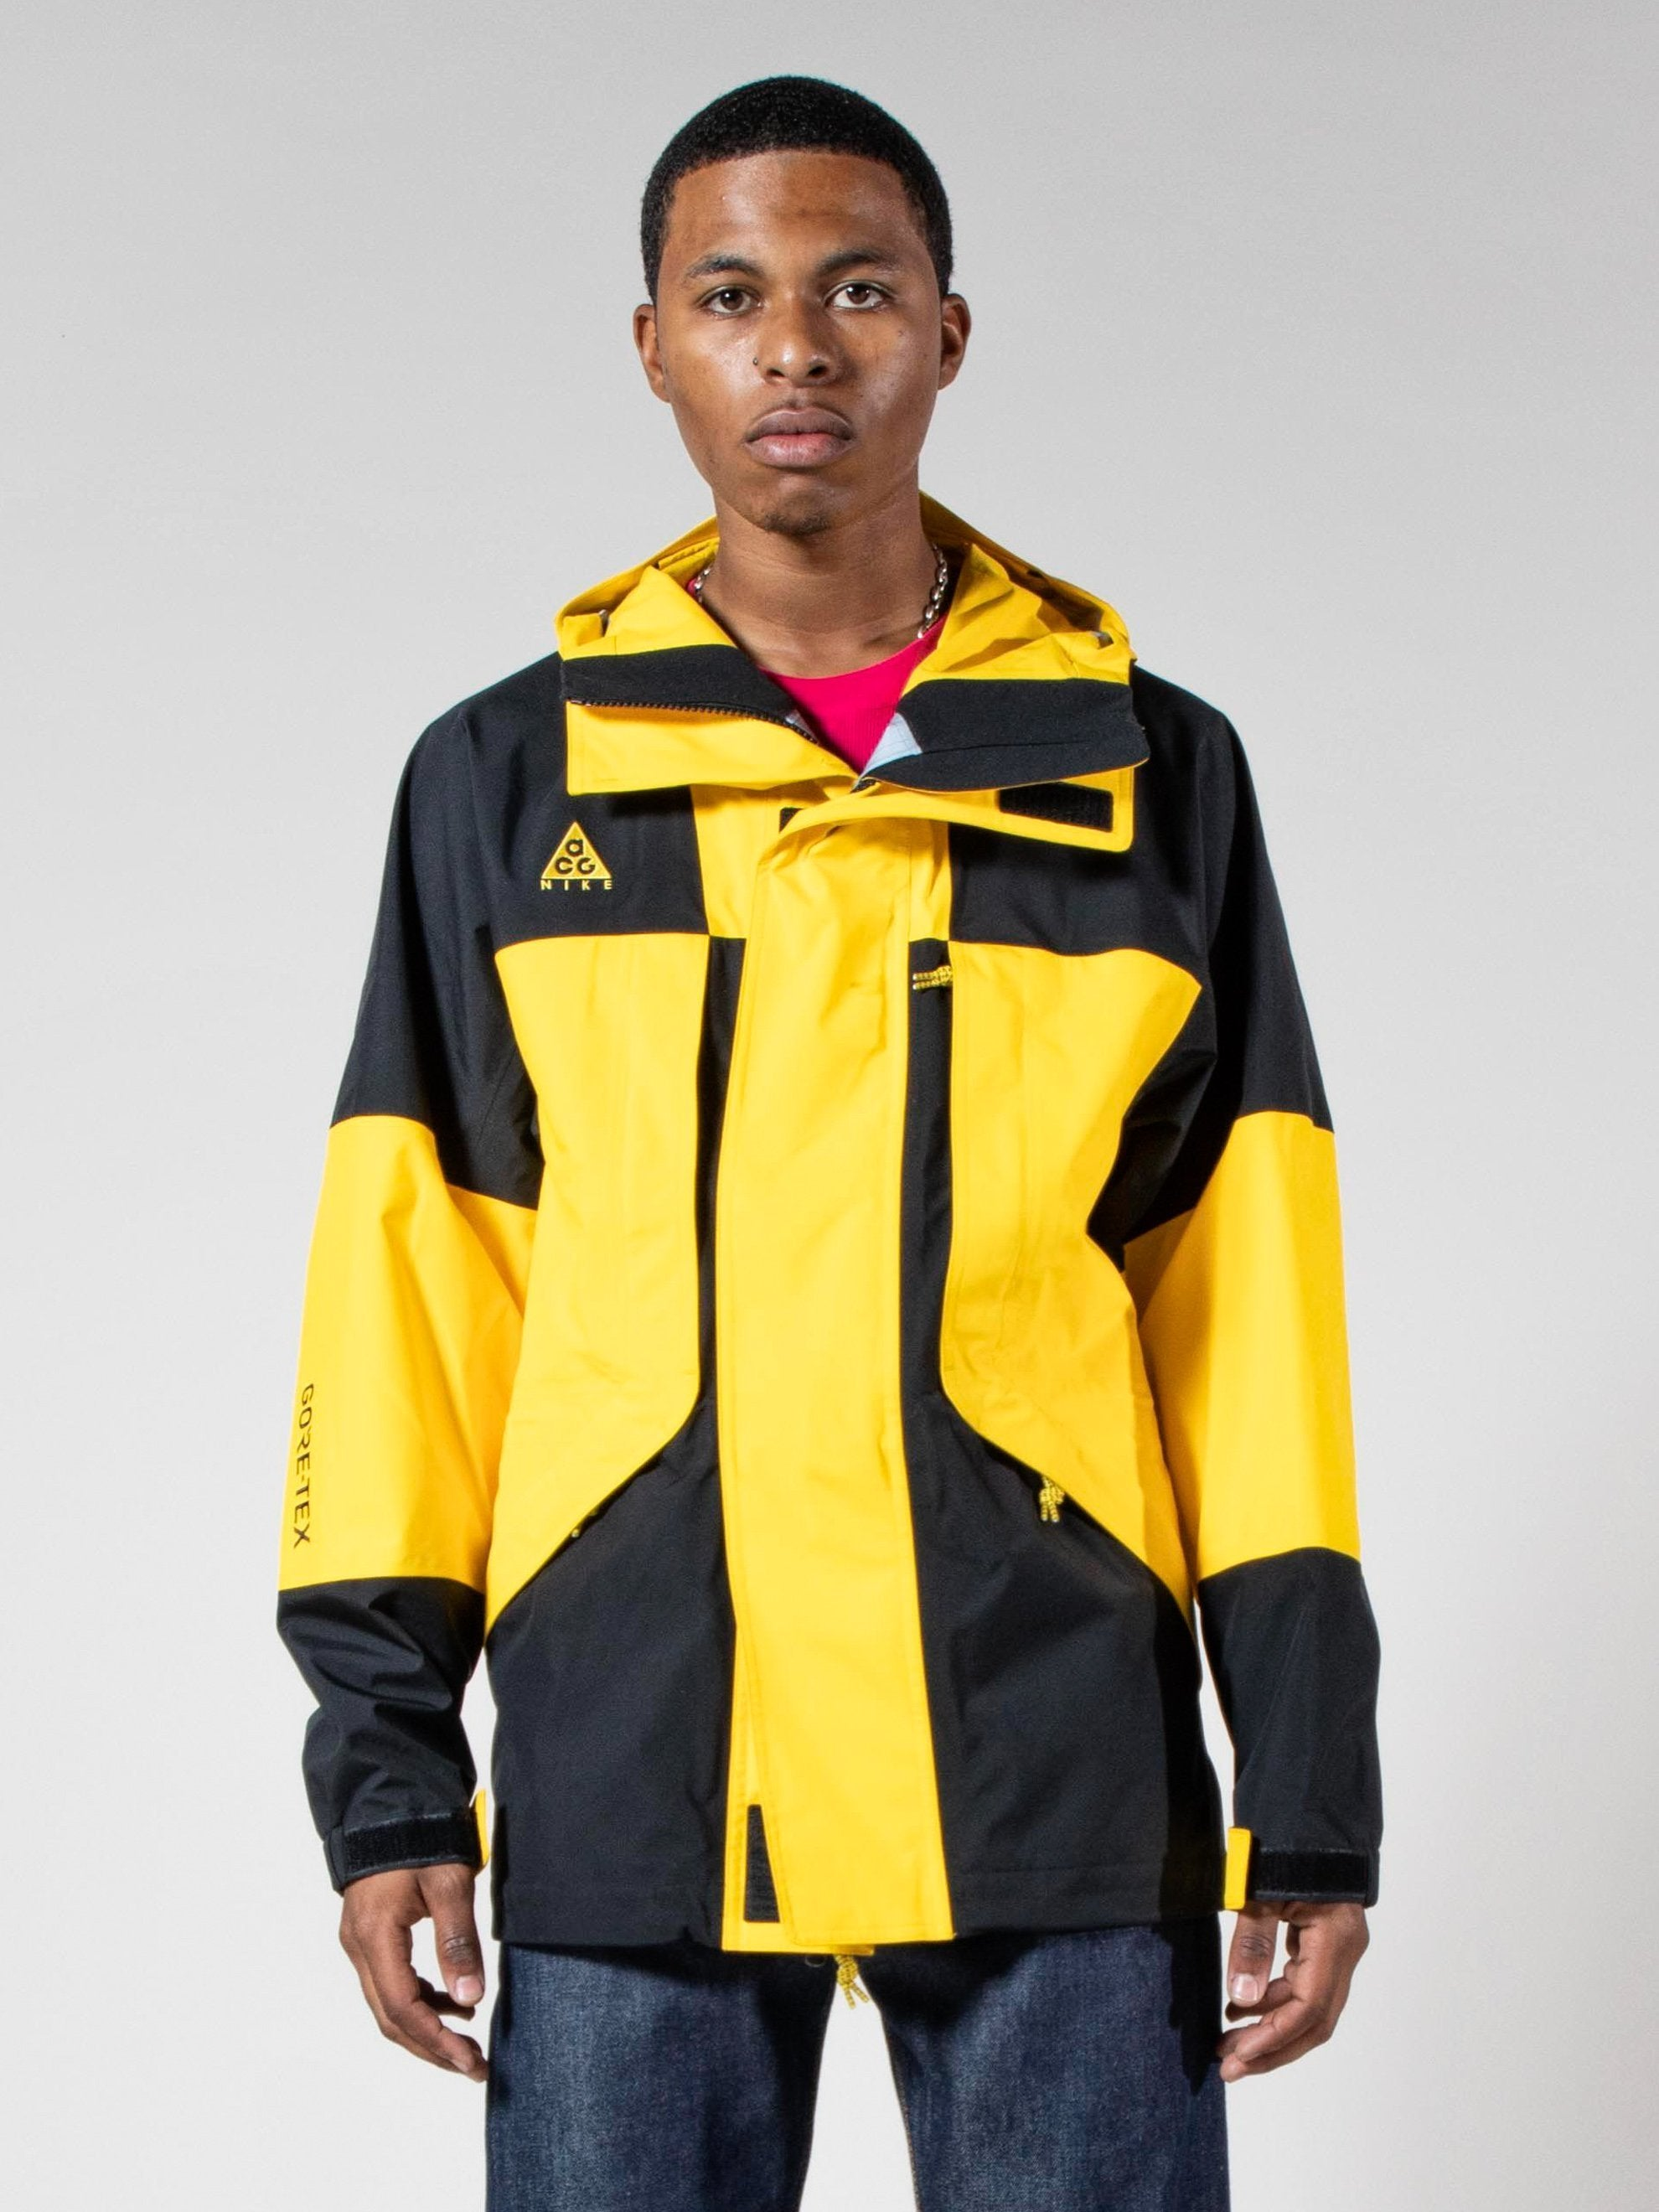 Buy NIKE ACG Gore Tex Jacket Online at UNION LOS ANGELES